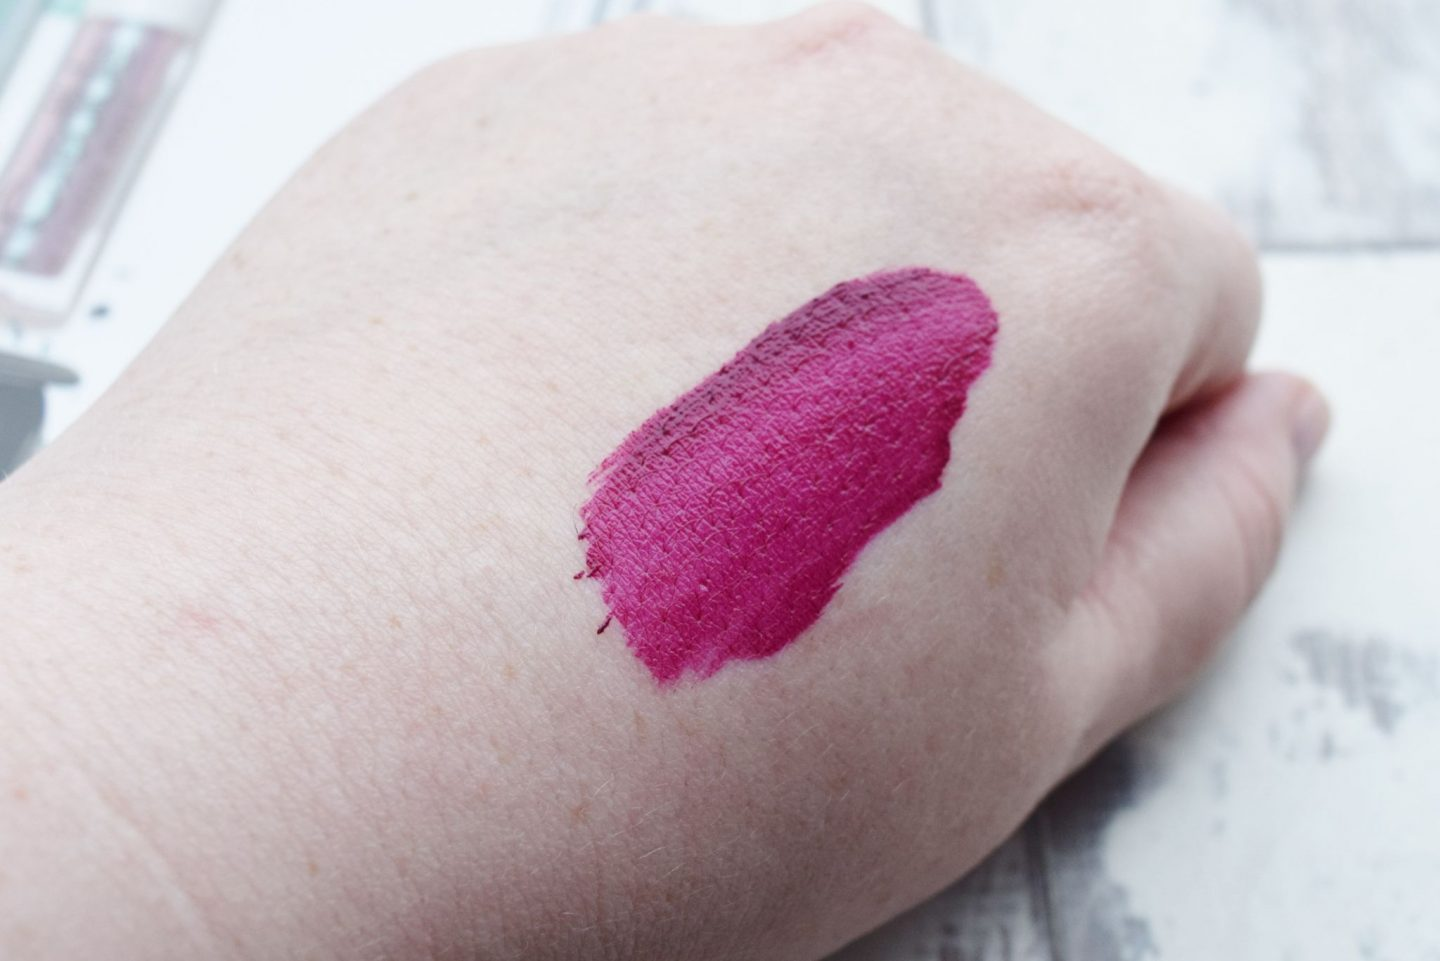 Estee Lauder Pure Color Envy Liquid LipColor in Orchid Flare swatch